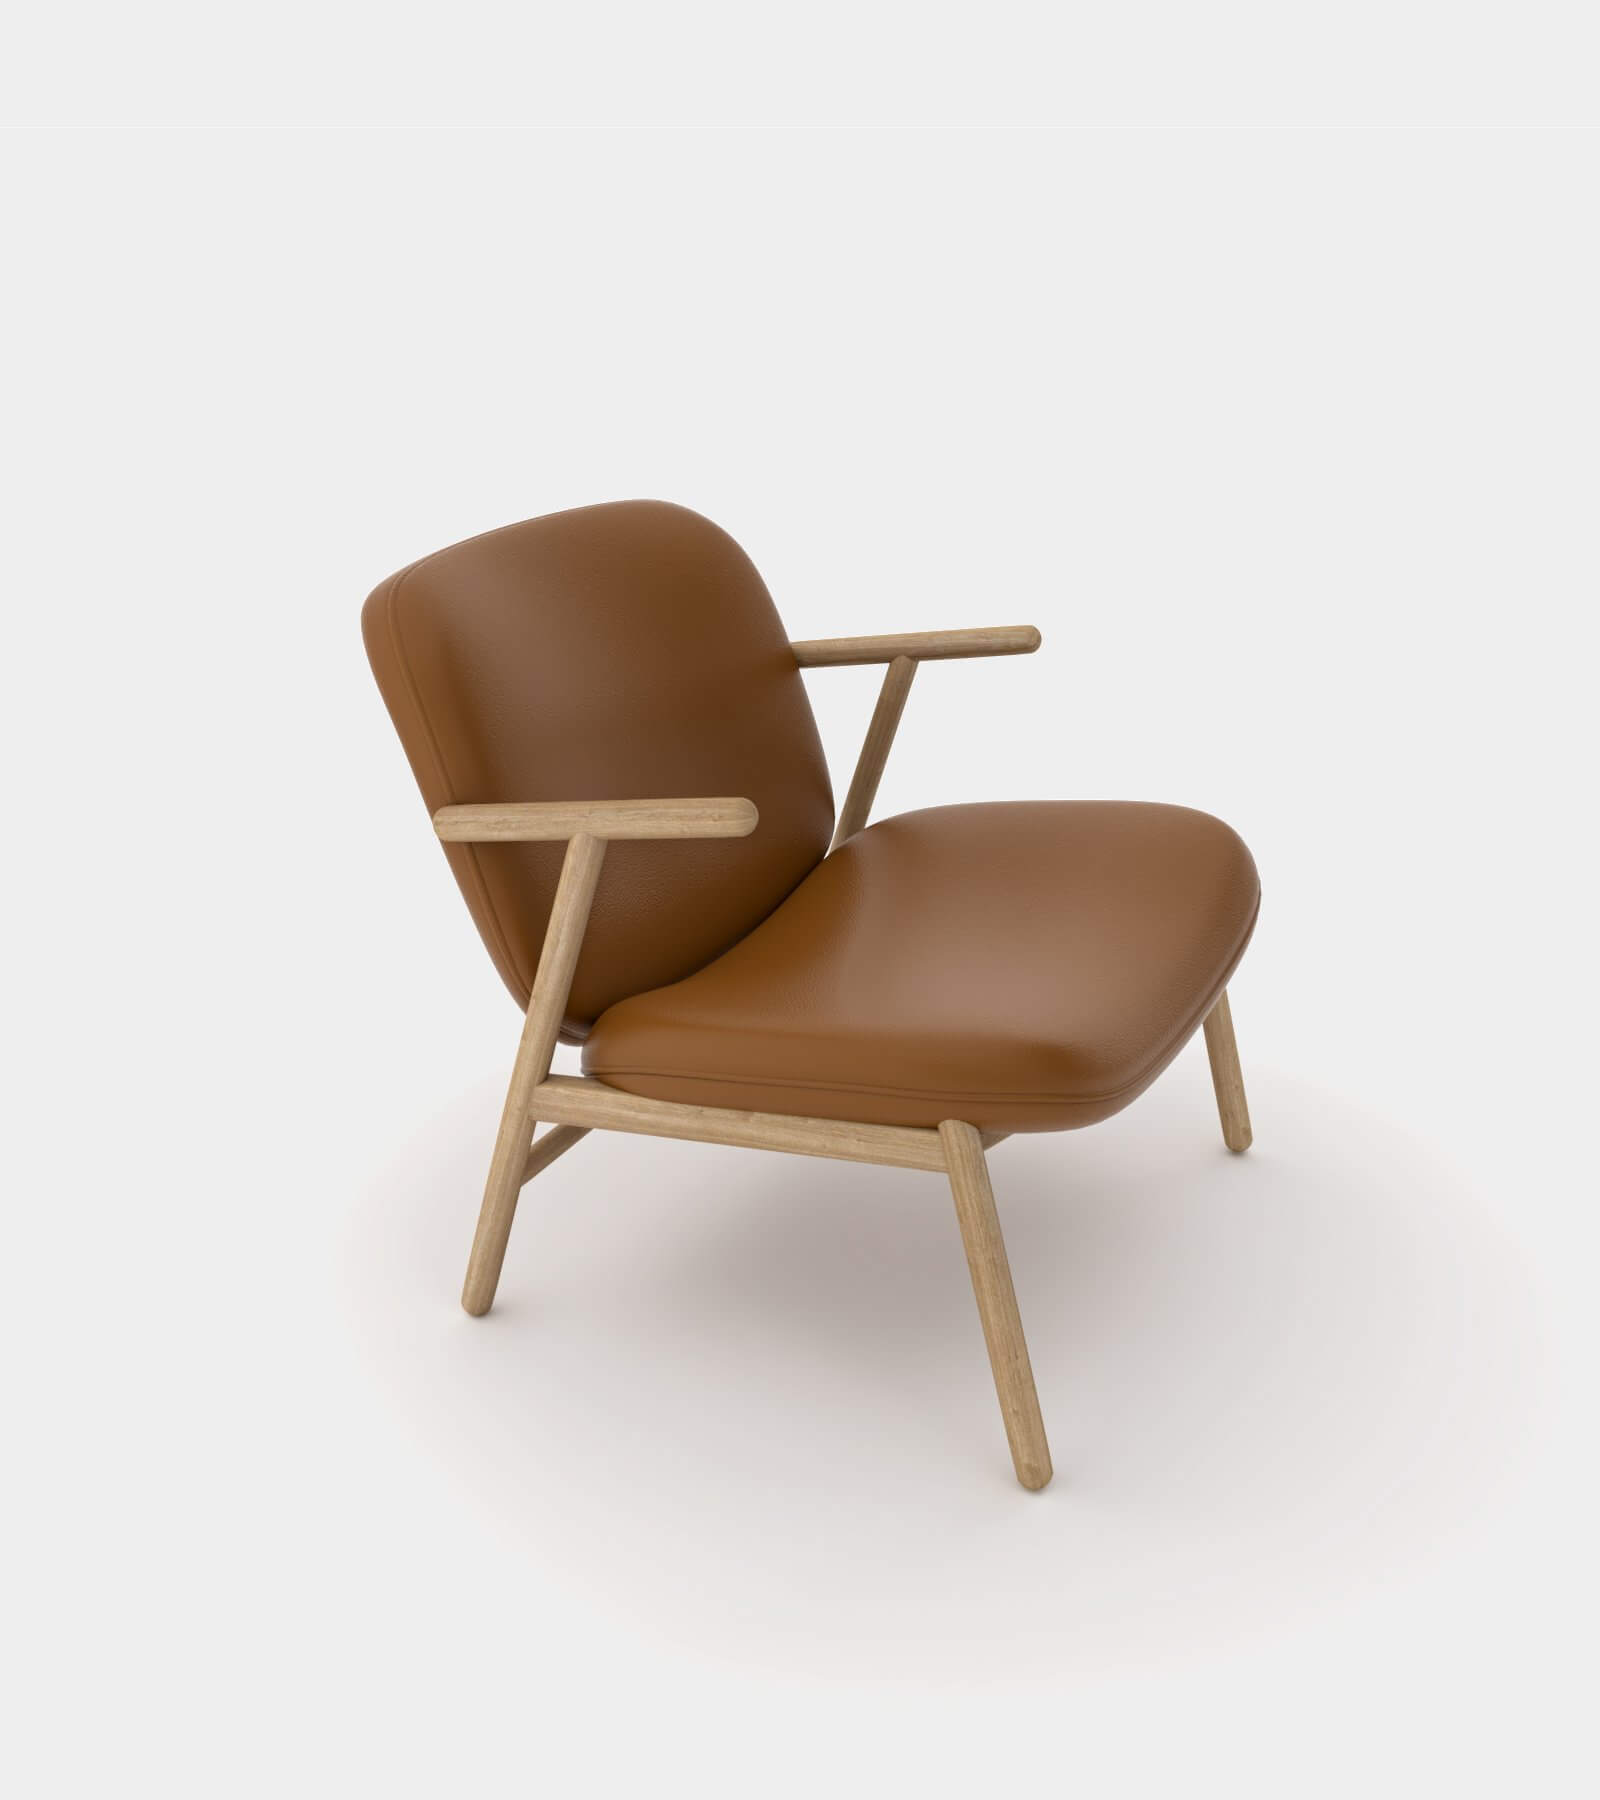 Cozy lounge chair-1-3D Model